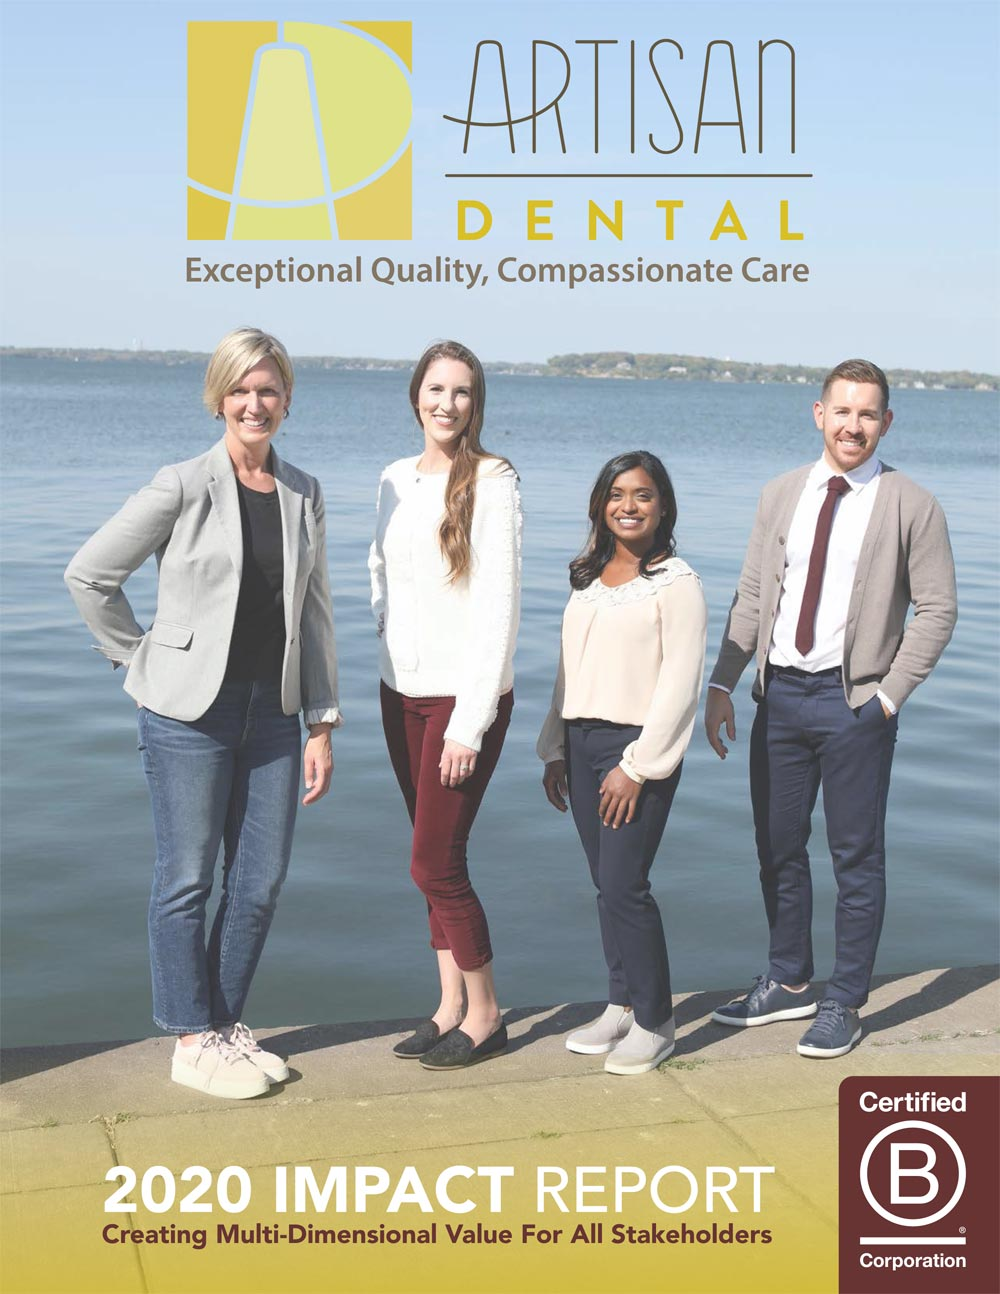 Artisan Dental Impact Report 2020 1 showing the concept of Impact Report